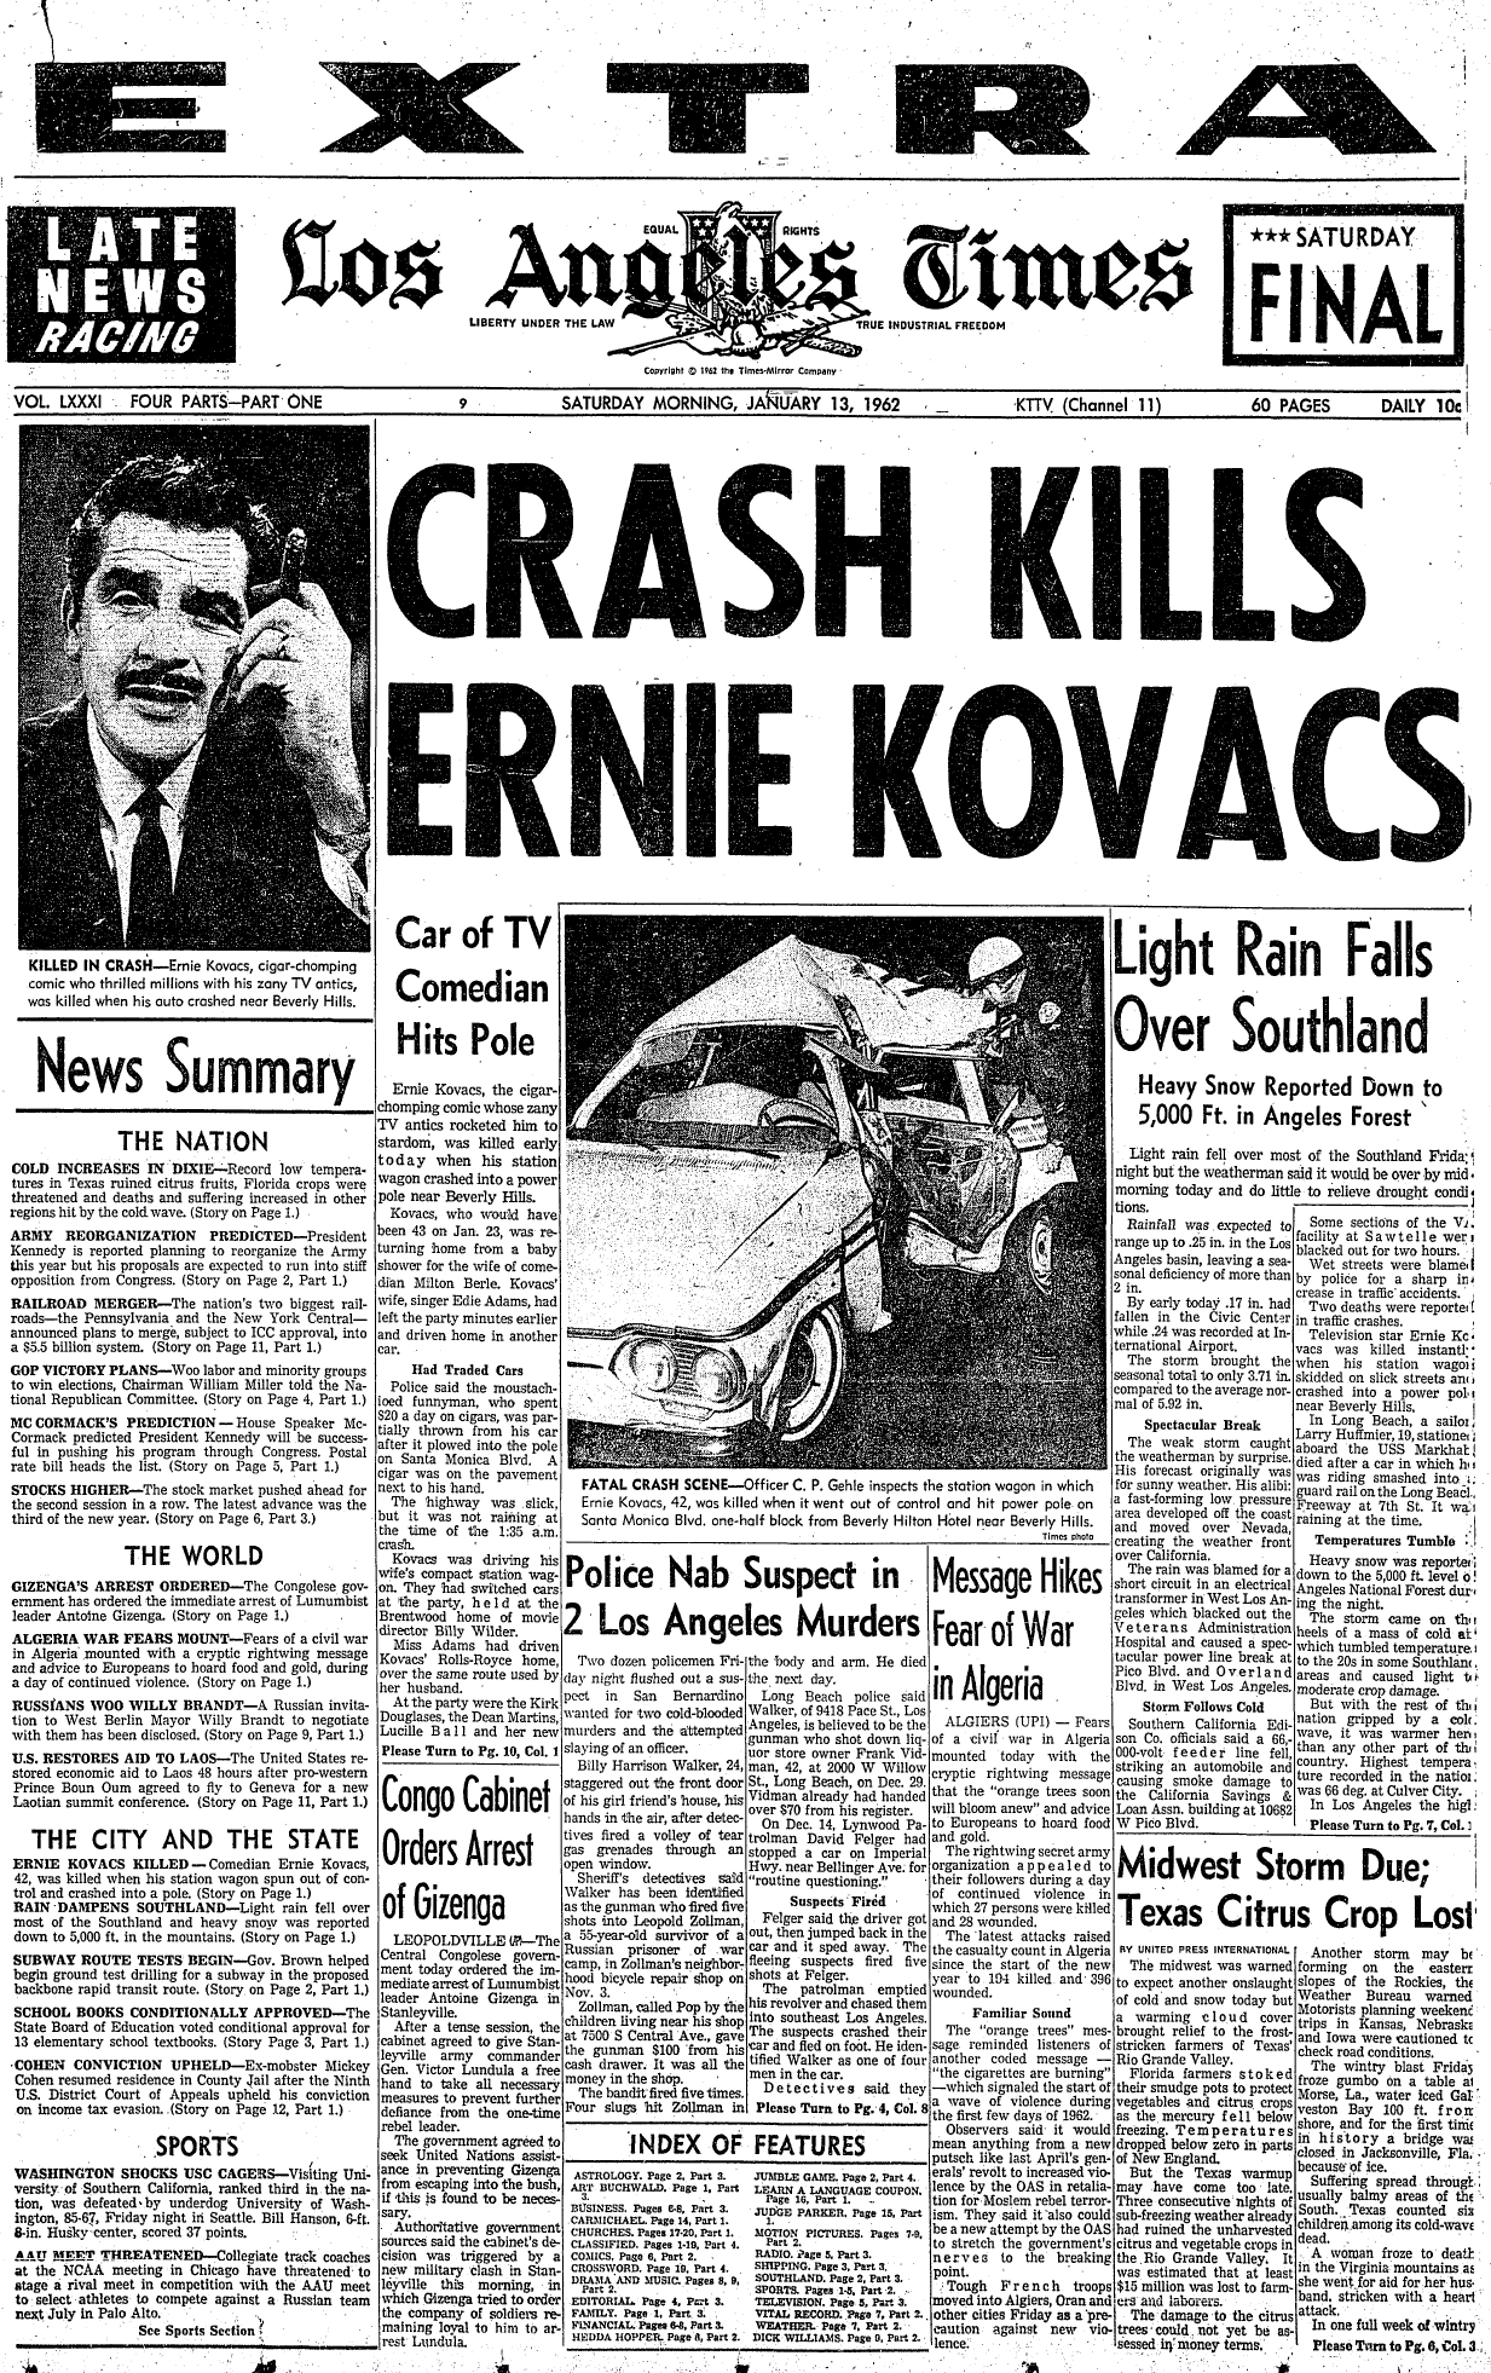 50th Anniversary Of the Death Of Ernie Kovacs